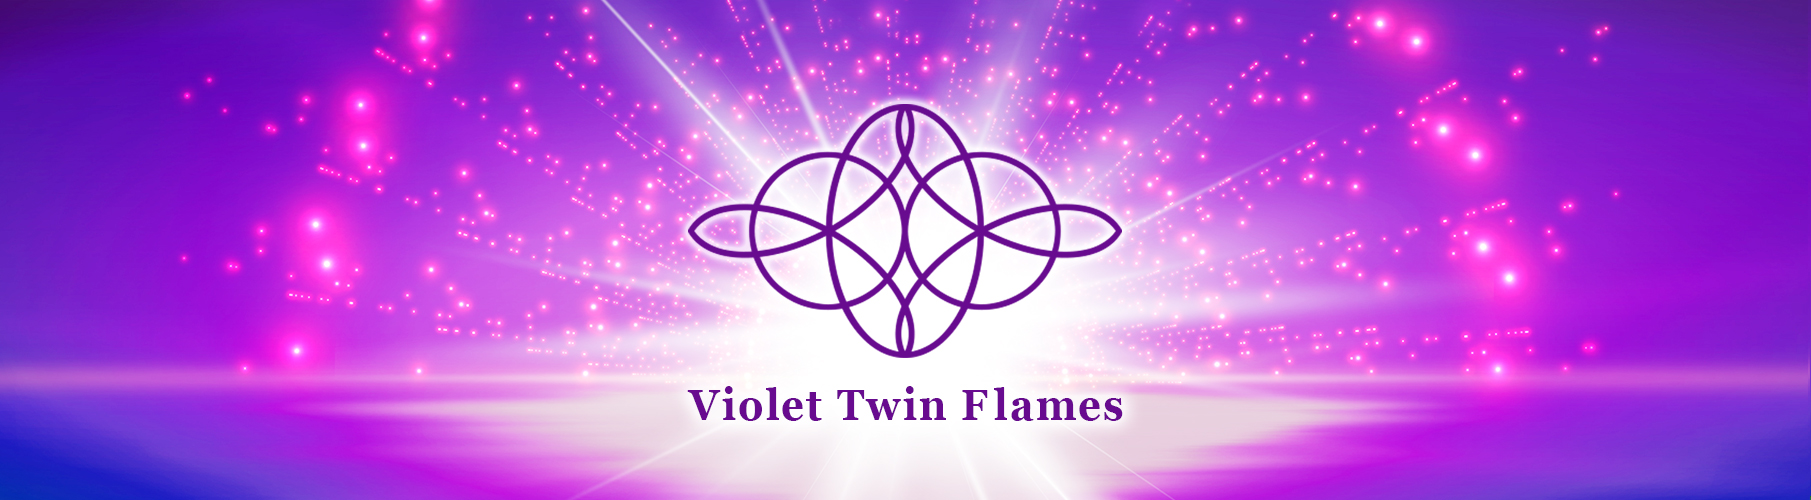 violet twin flames